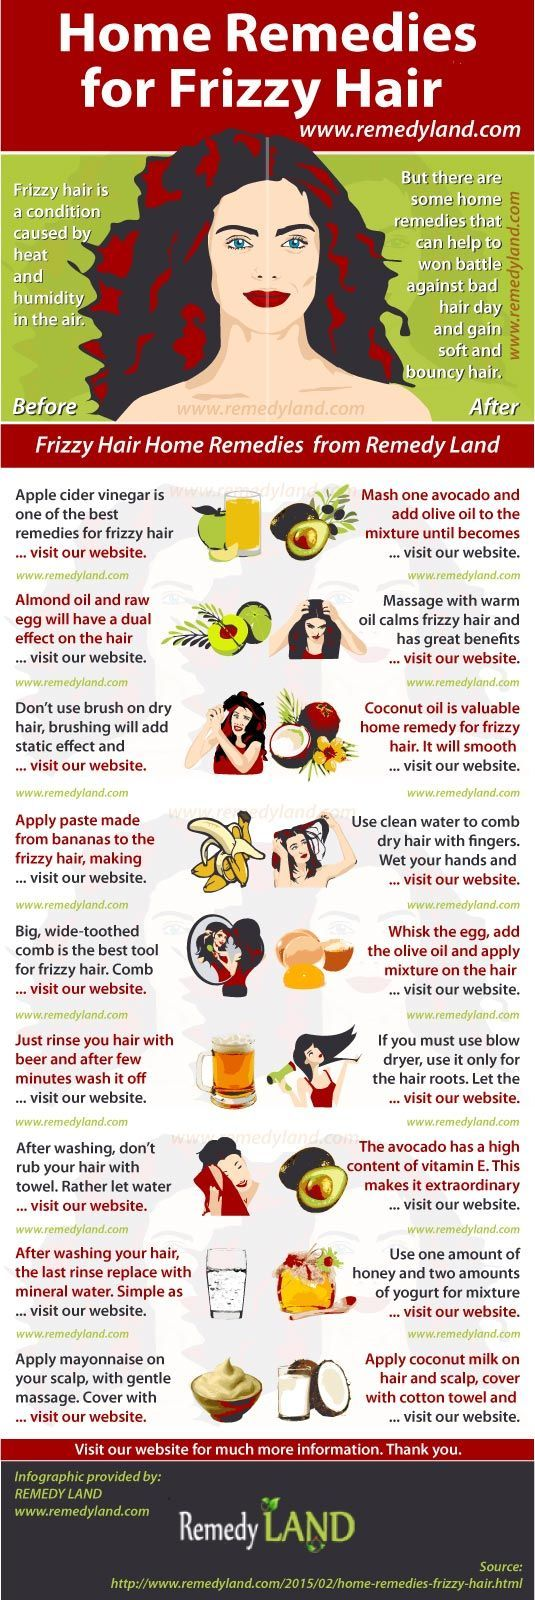 Hair Tips | Tame your frizzy hair naturally with home remedies, gaining silkiness and caring for hair health at the same time.